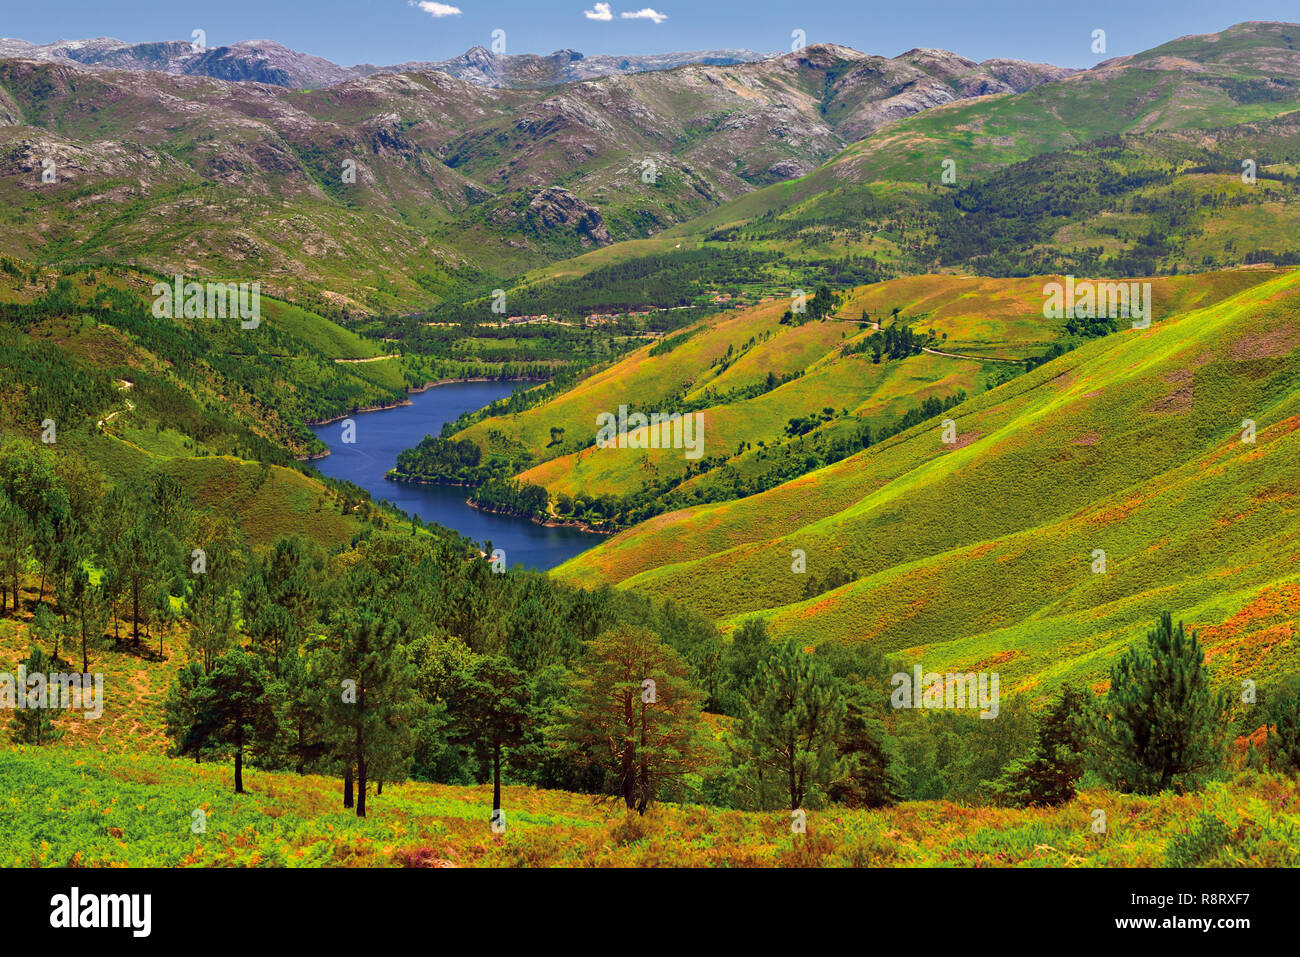 View of splendid landscape with green hills surrounding blue lake with high mountain pics in the background - Stock Image